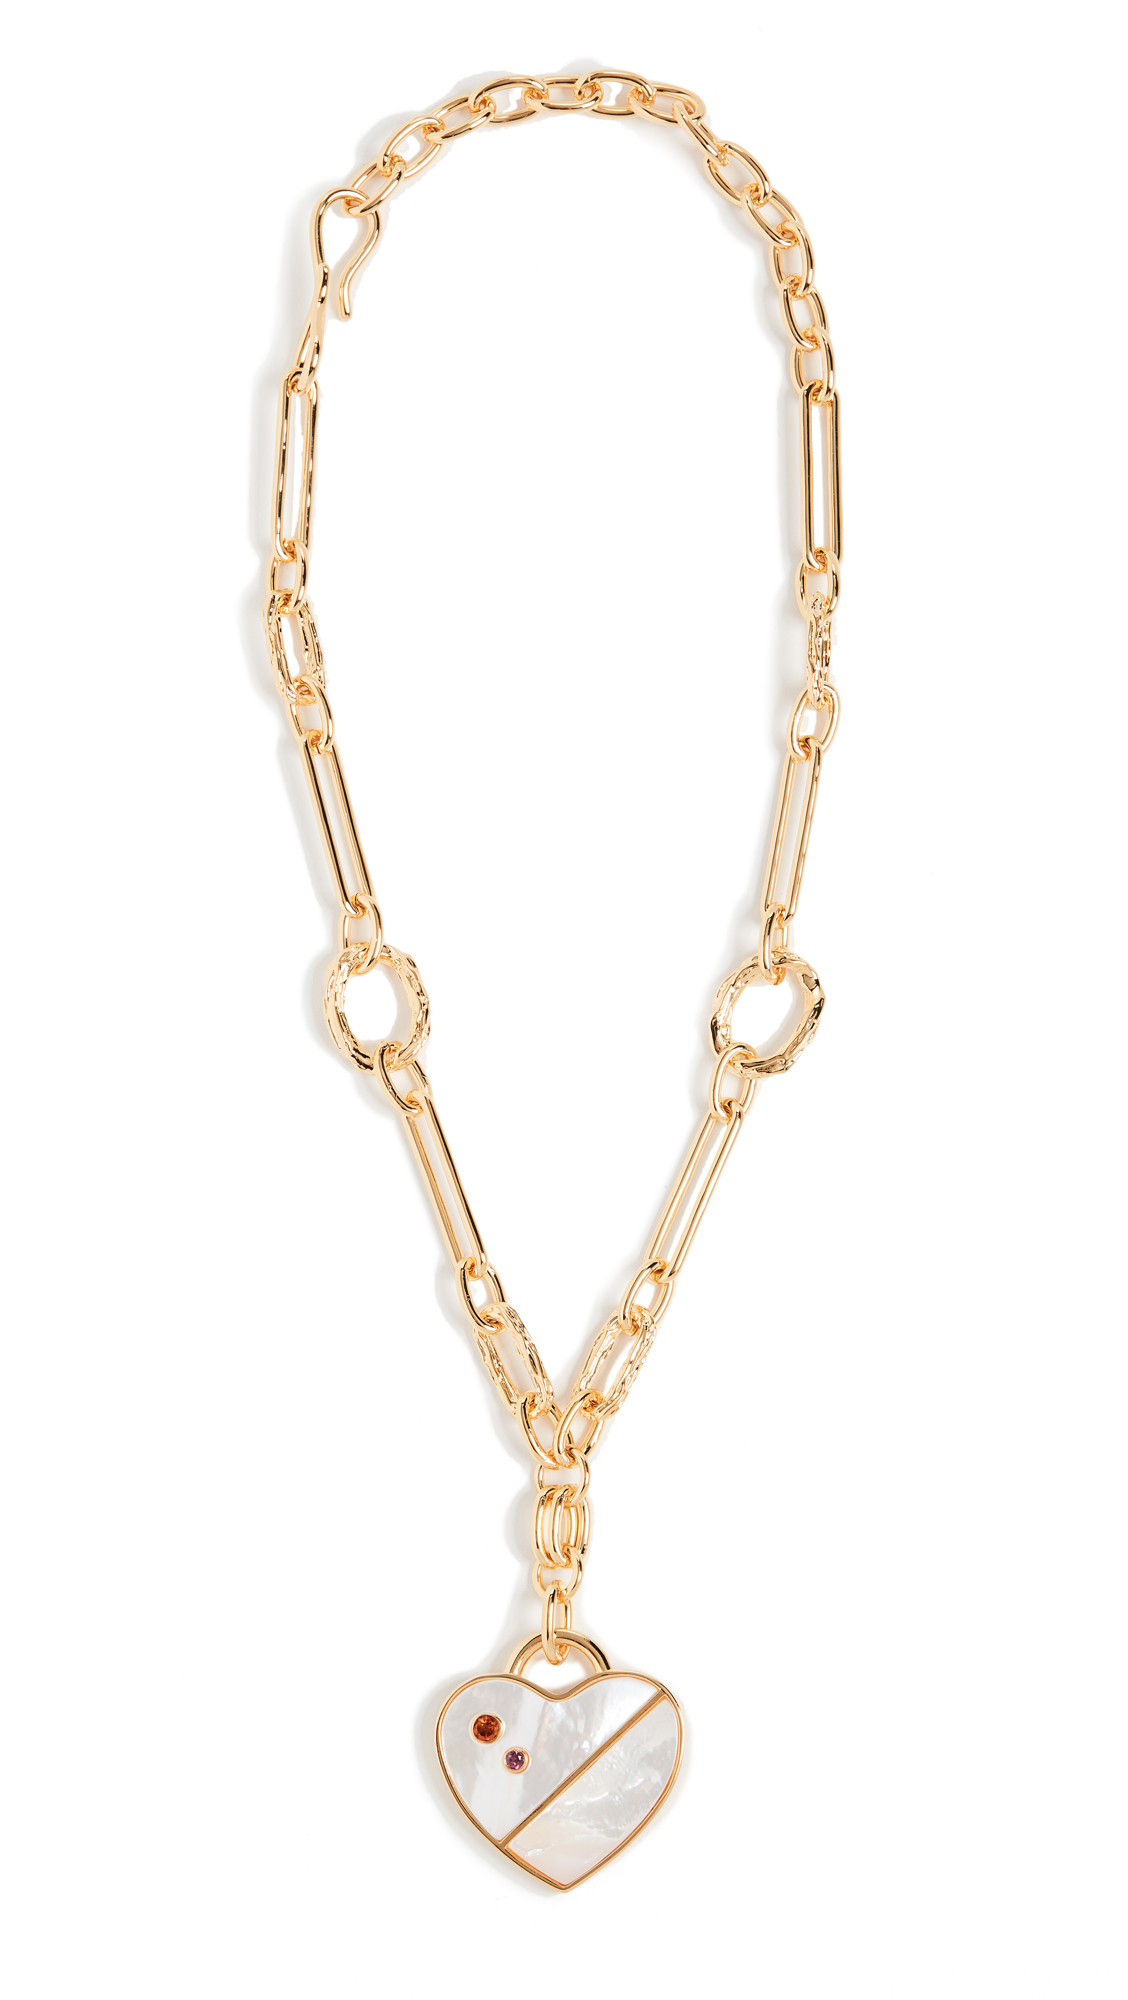 Lizzie Fortunato Venice Heart Necklace In Gold/Mother Of Pearl